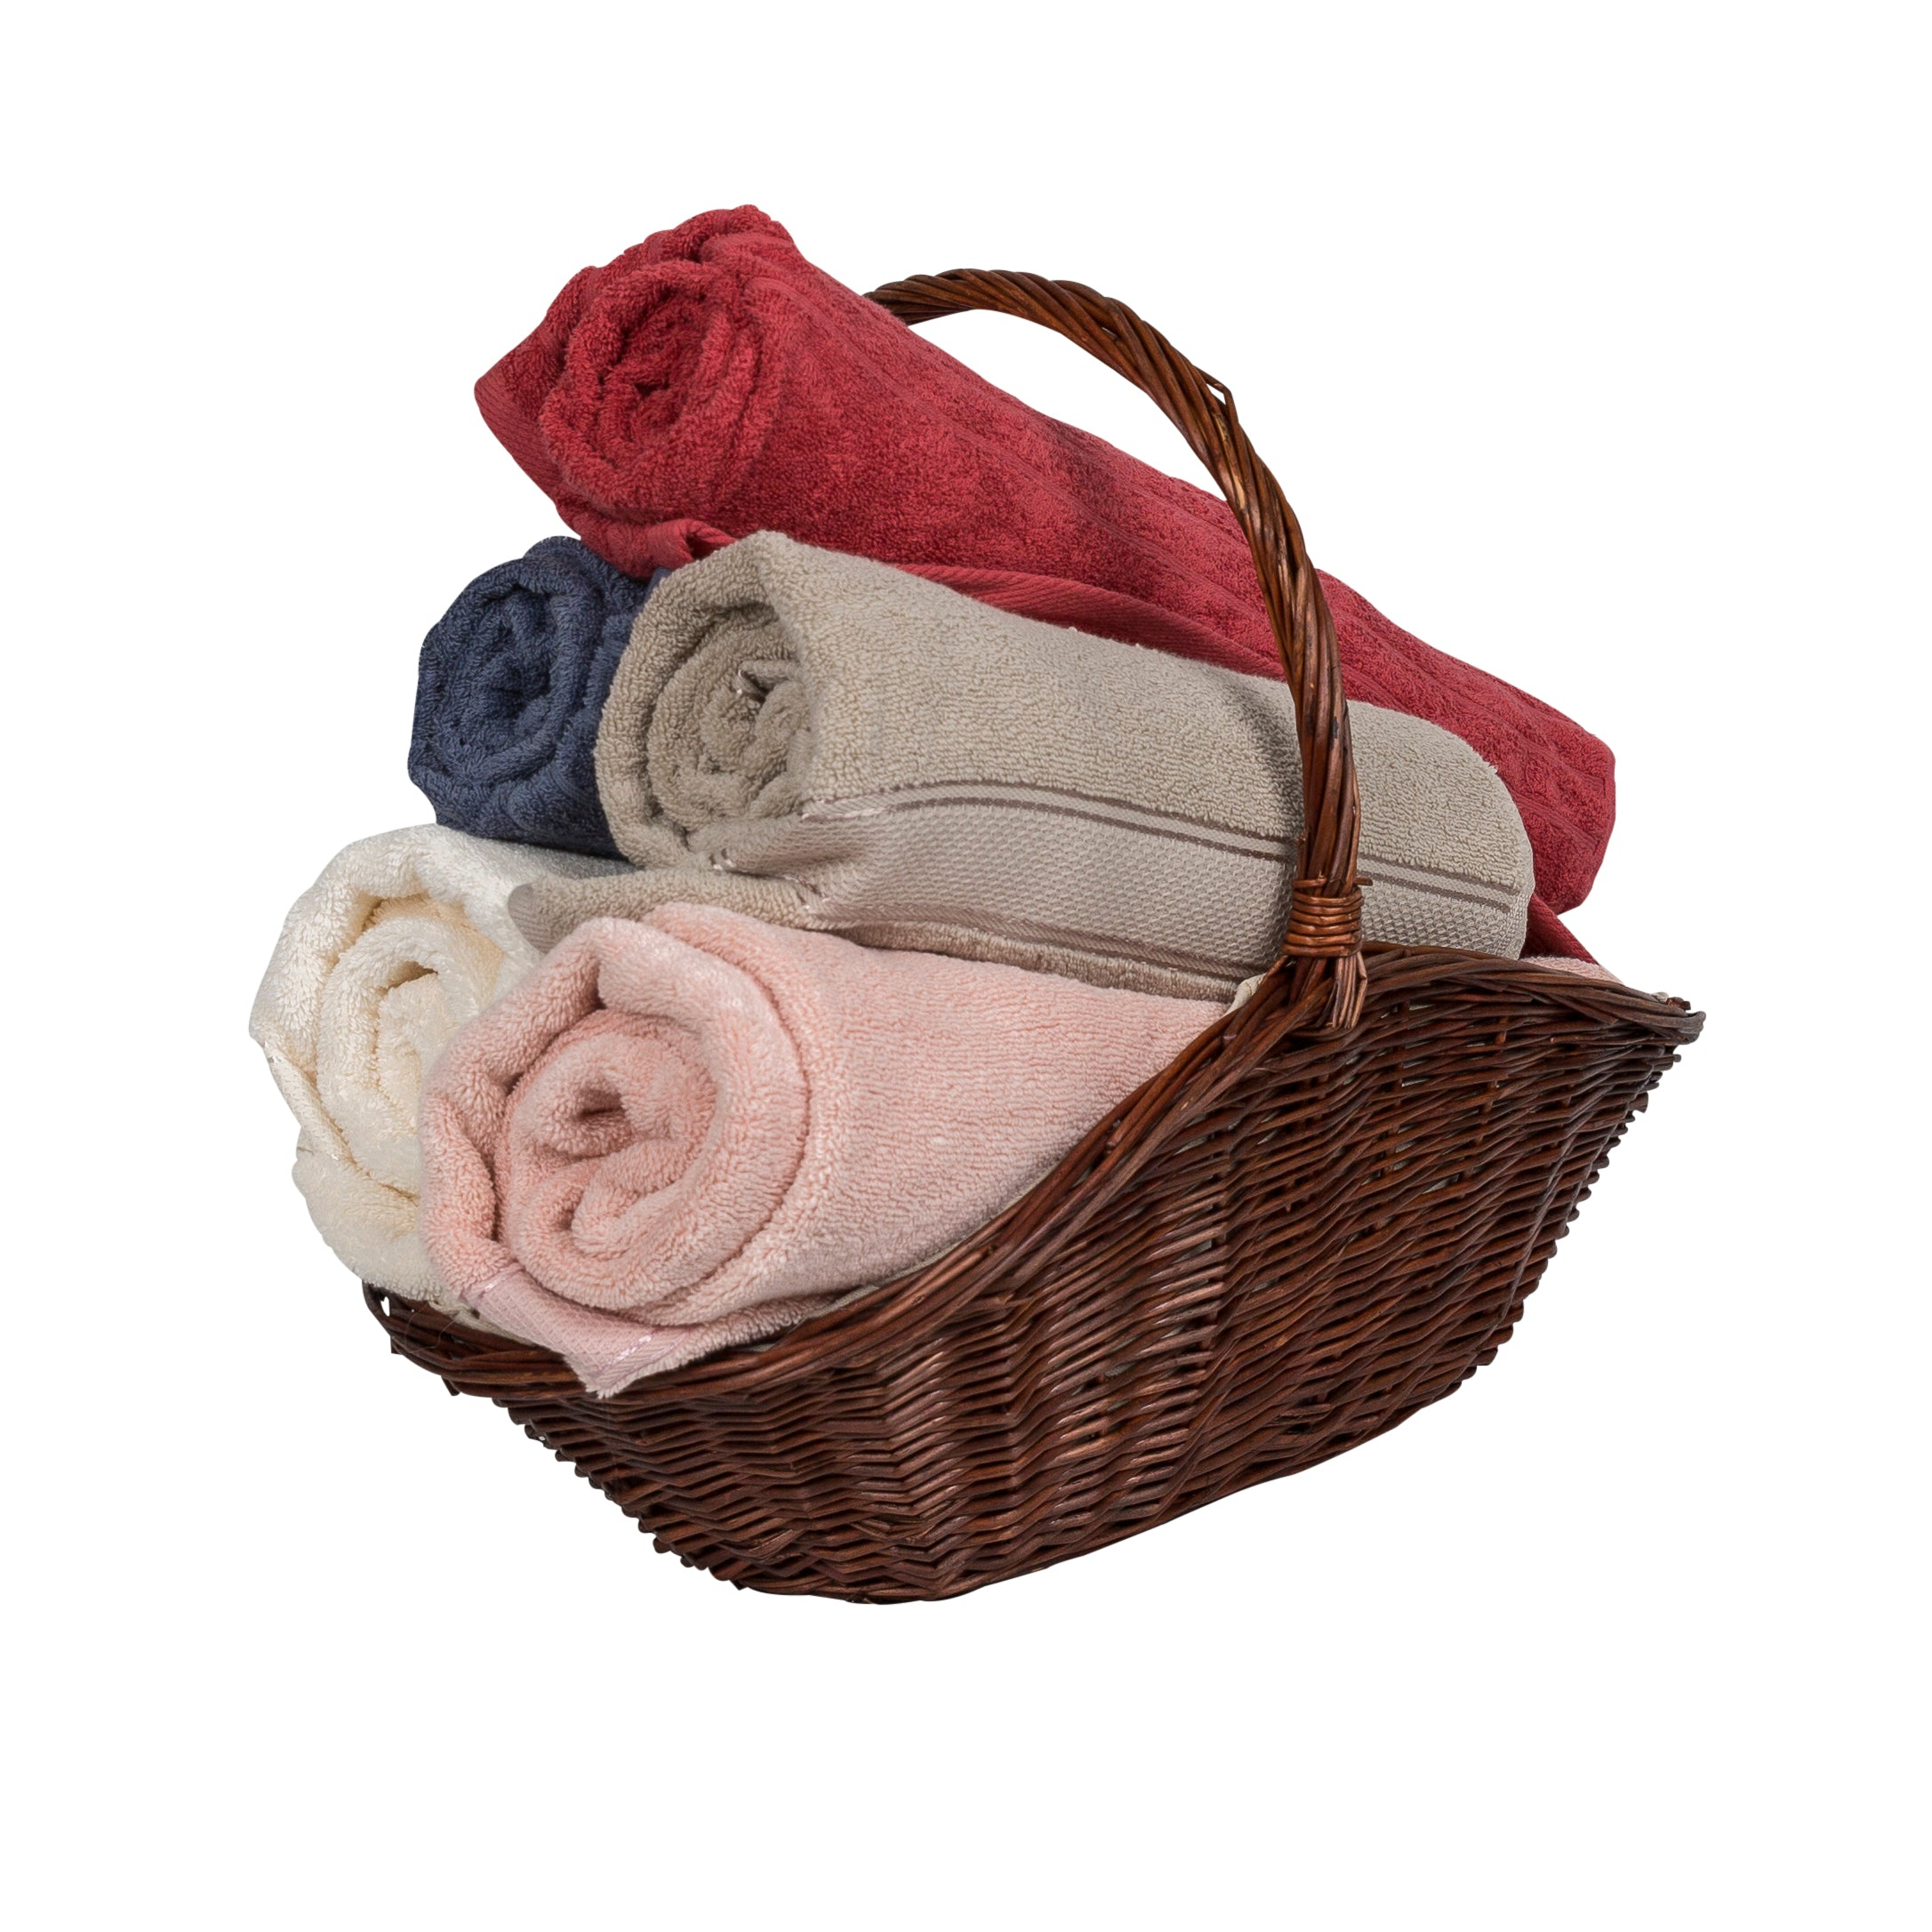 Image of Wicker basket holding an arrangement of towels